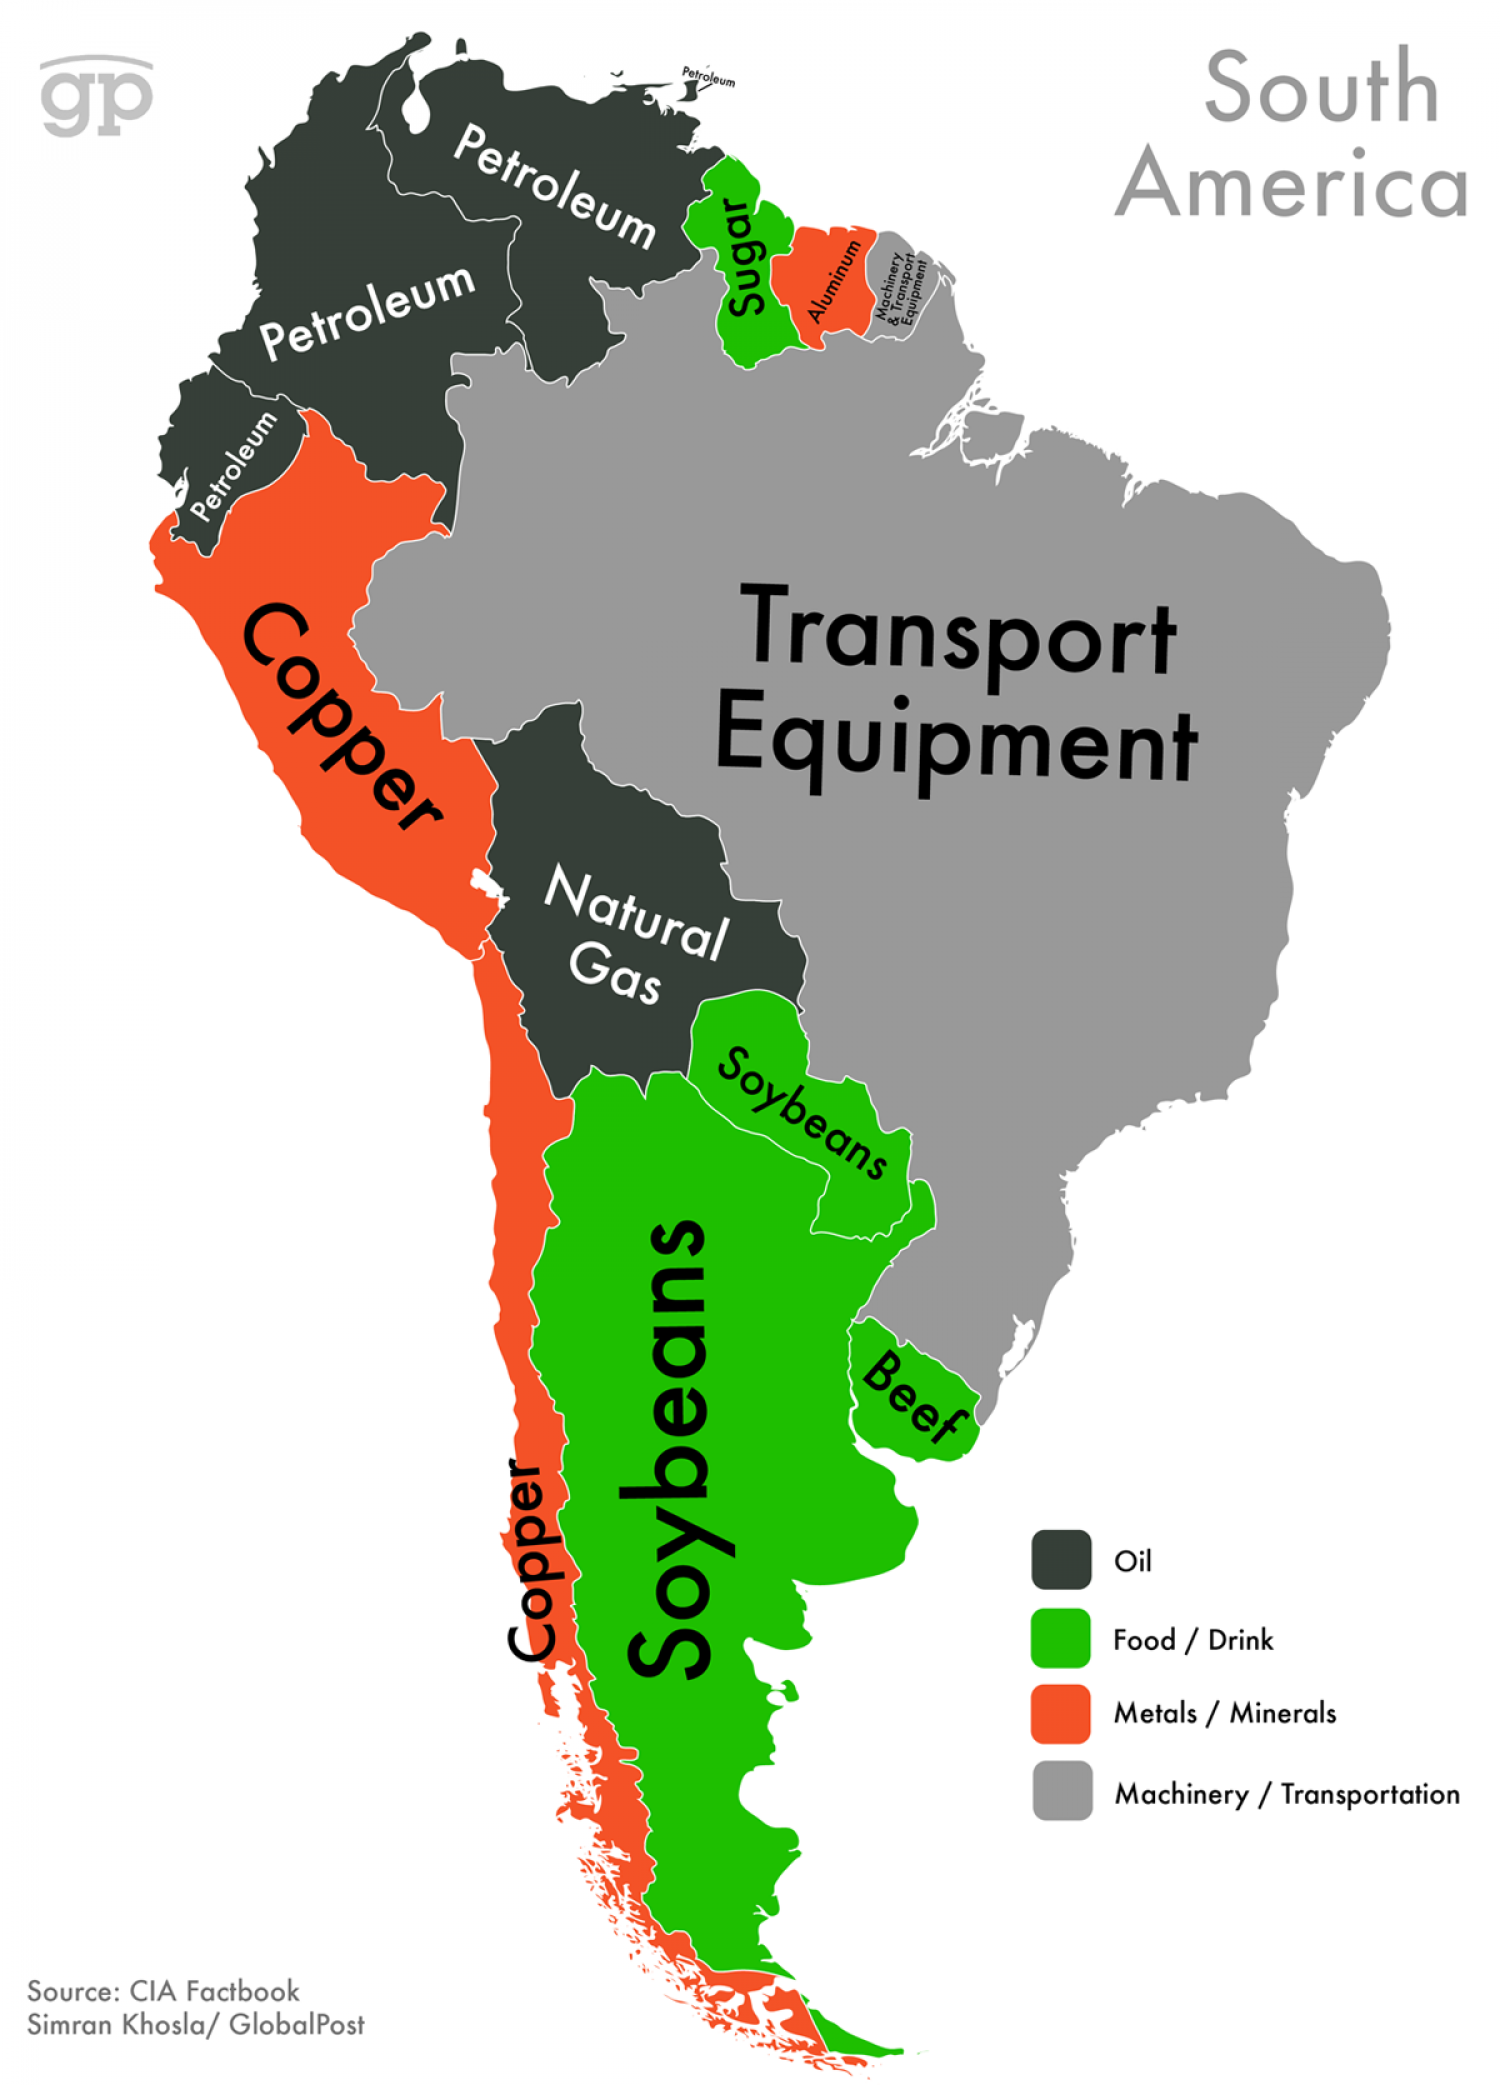 World Commodities Map: South America Infographic